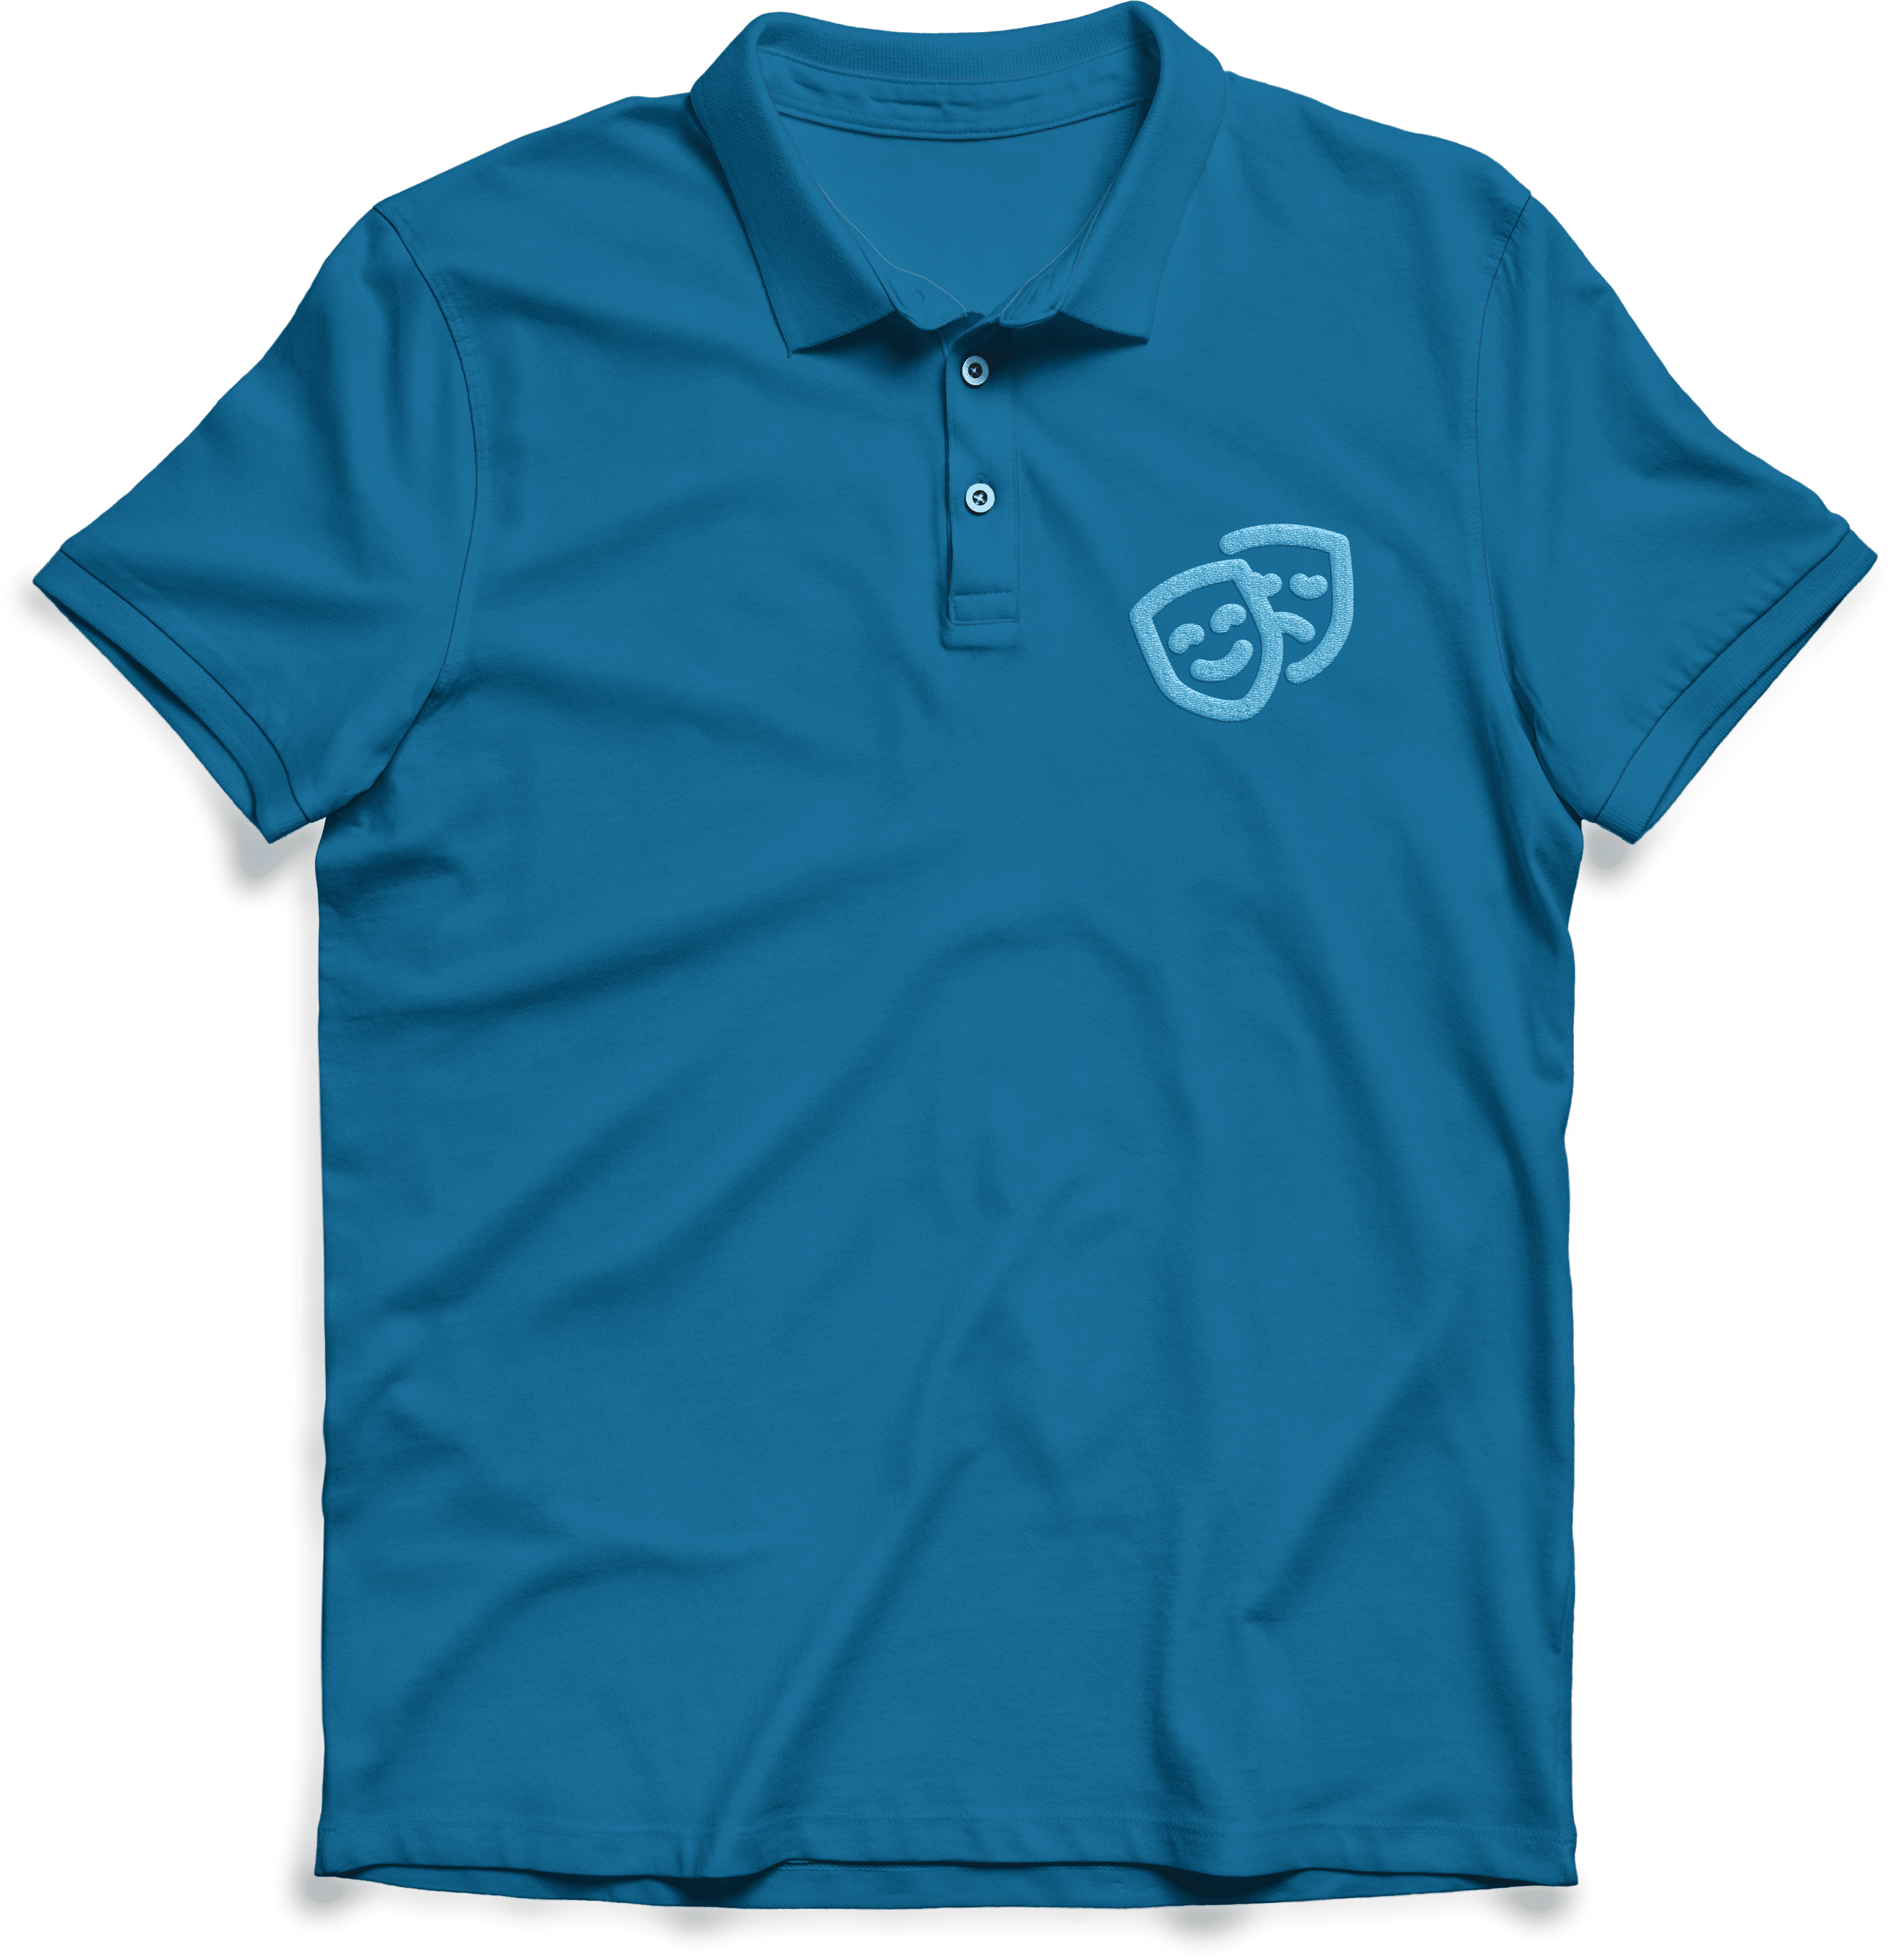 insert theatrical blue icon on blue polo top